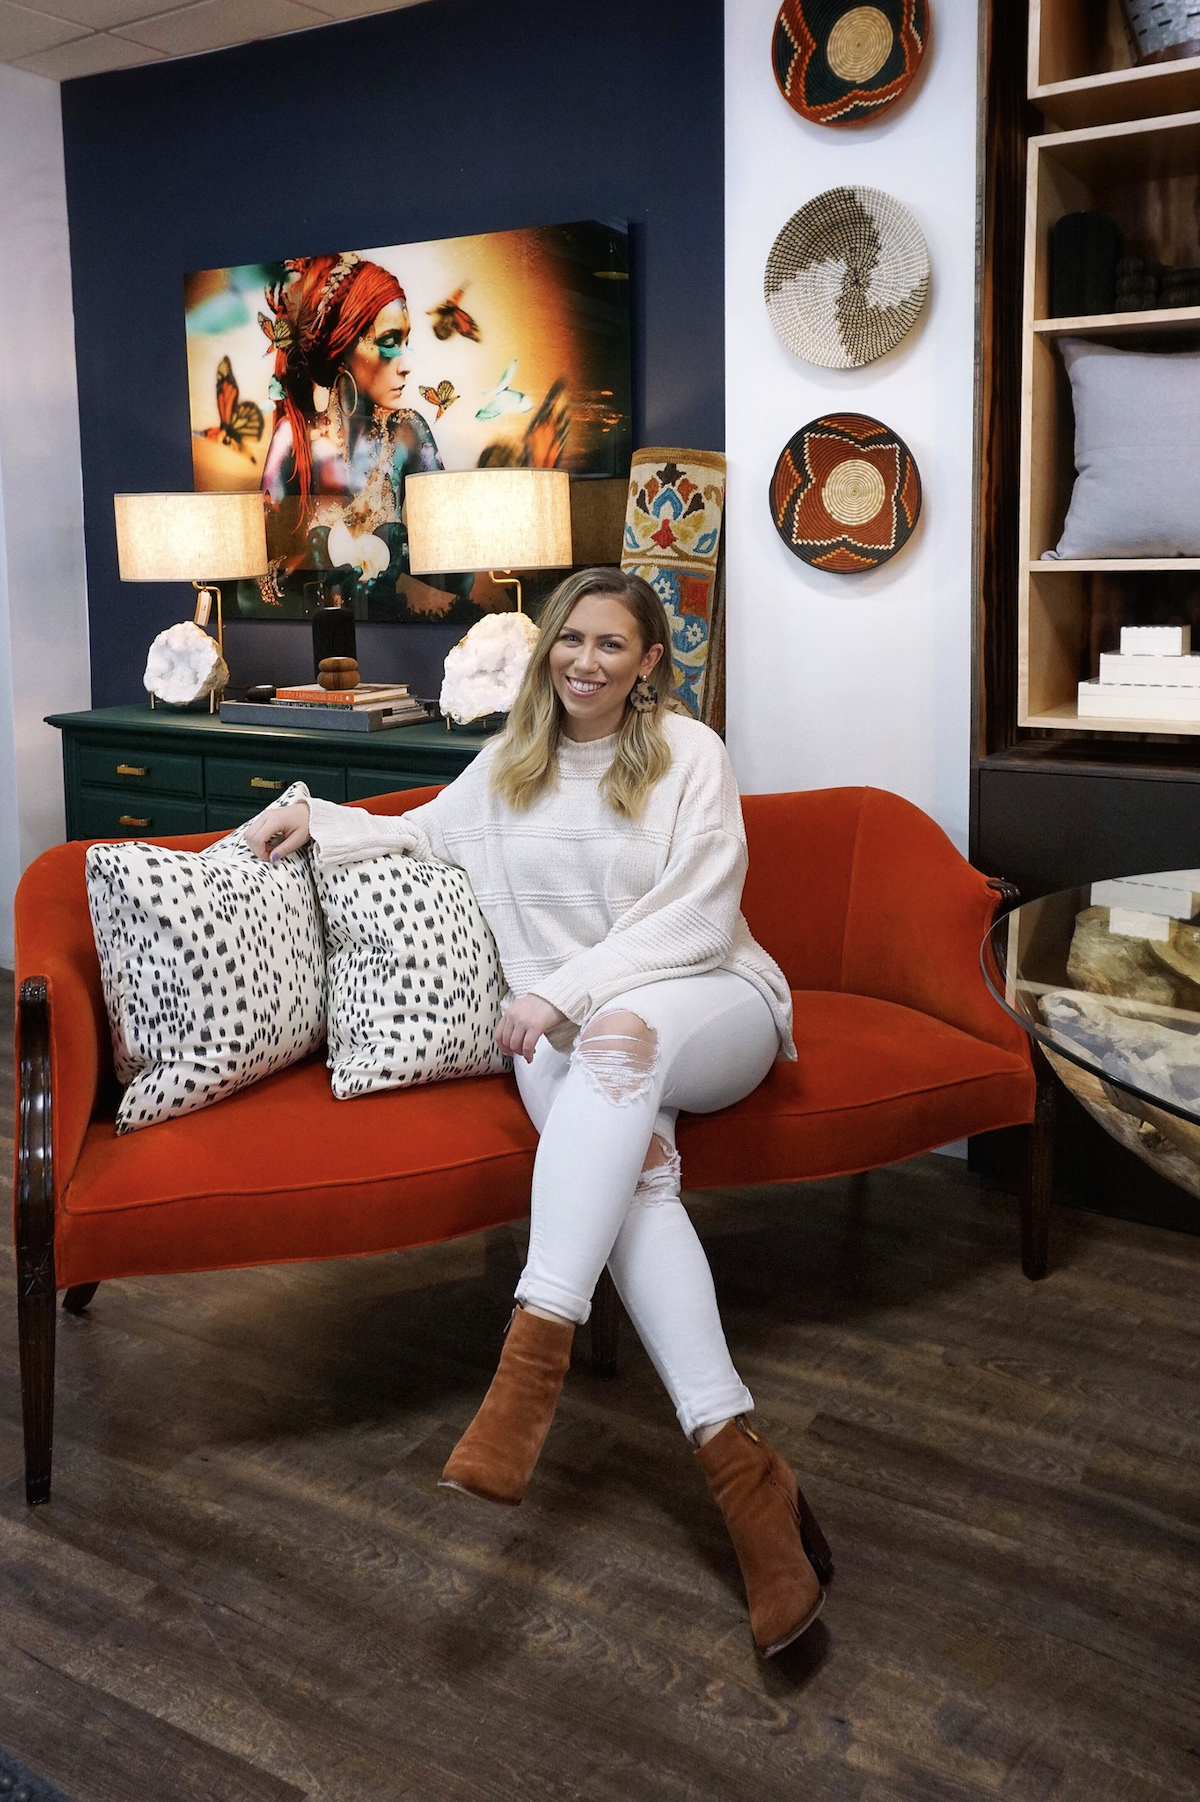 Fofie & Mia's – Westchester's Newest Store for One-of-a-Kind Home Furnishings